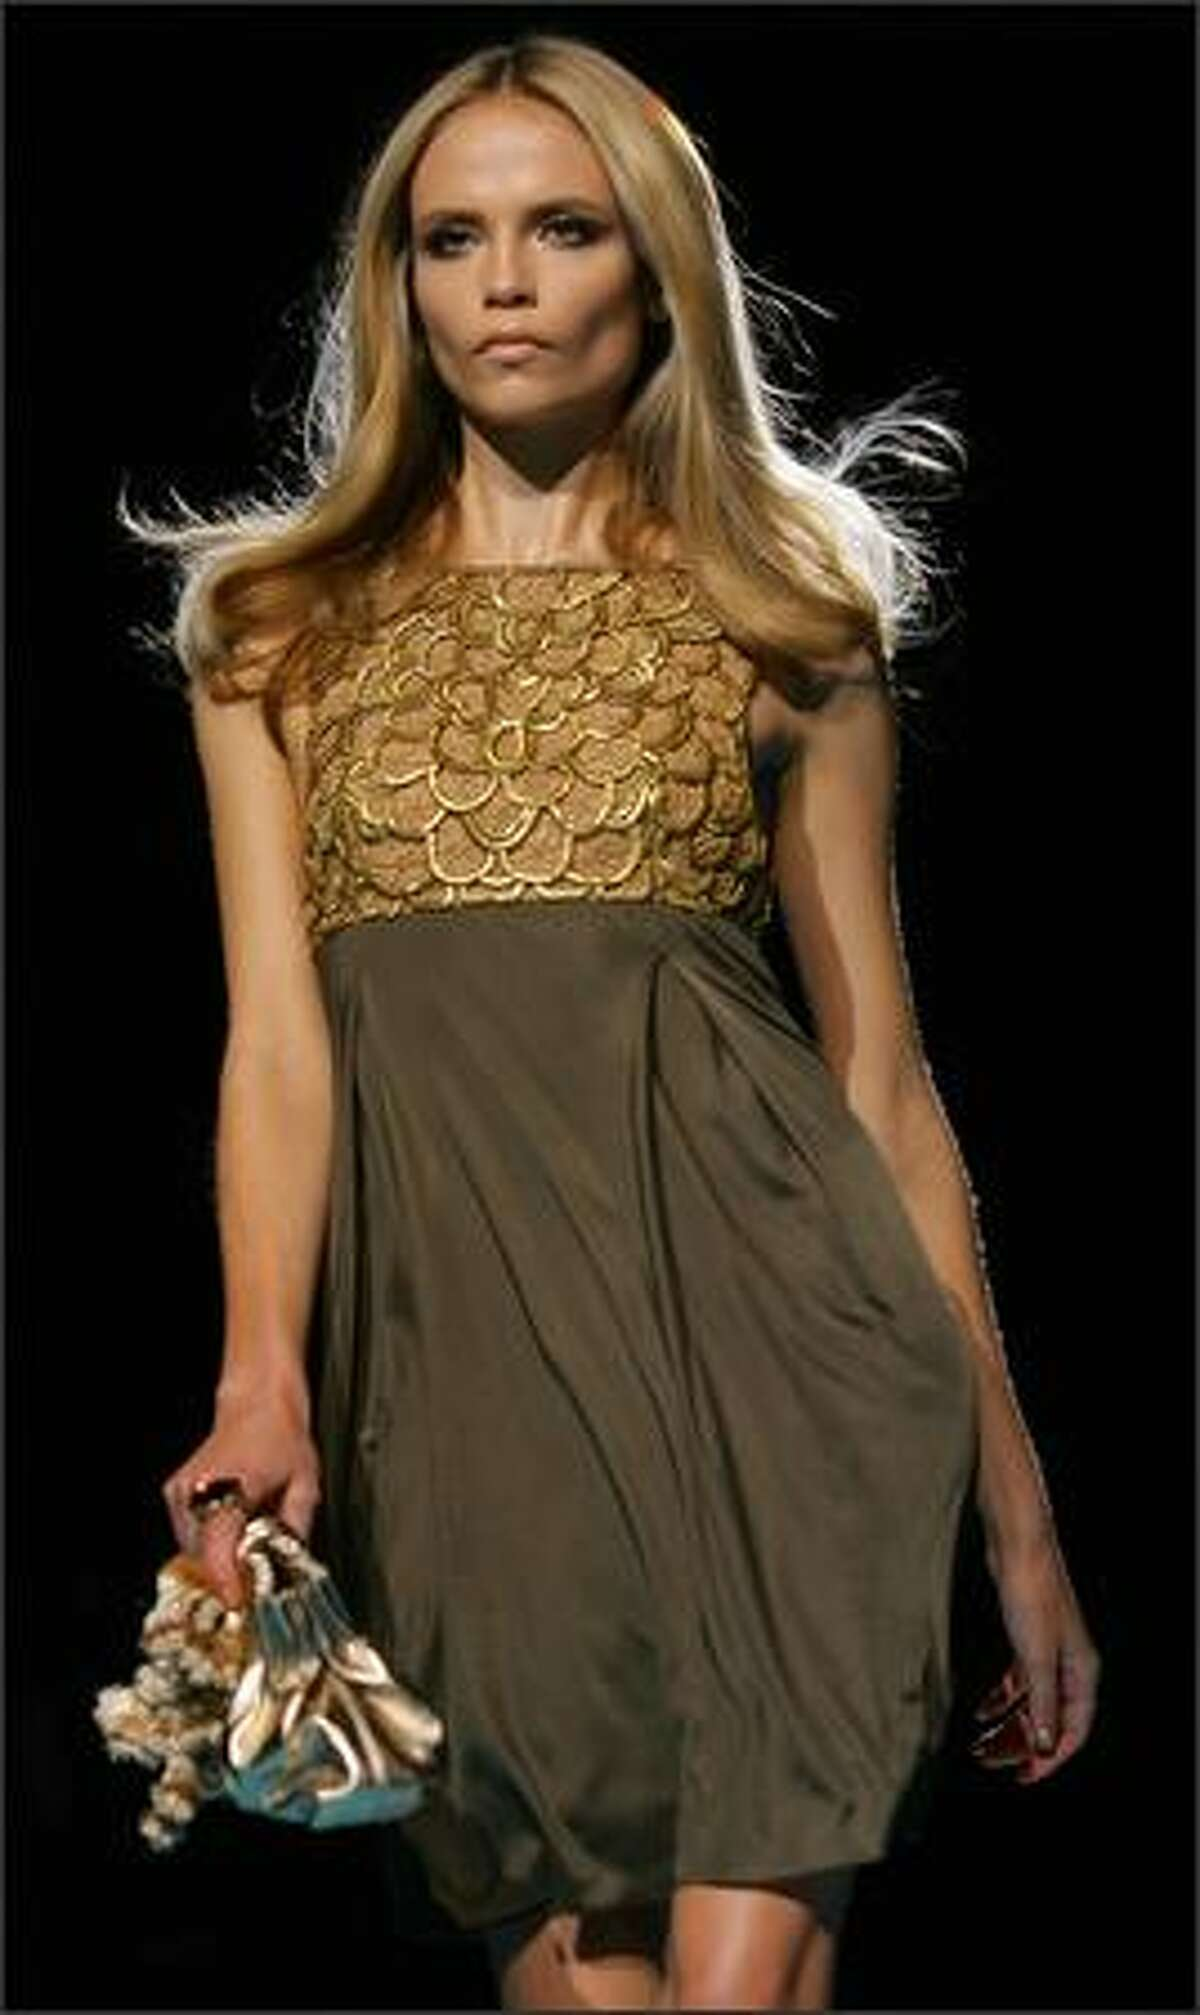 A model presents a creation by Italian designer Donatella Versace for Italian fashion house Gianni Versace during the Spring/Summer 2008 collections of the Milan ready-to-wear fashion shows.